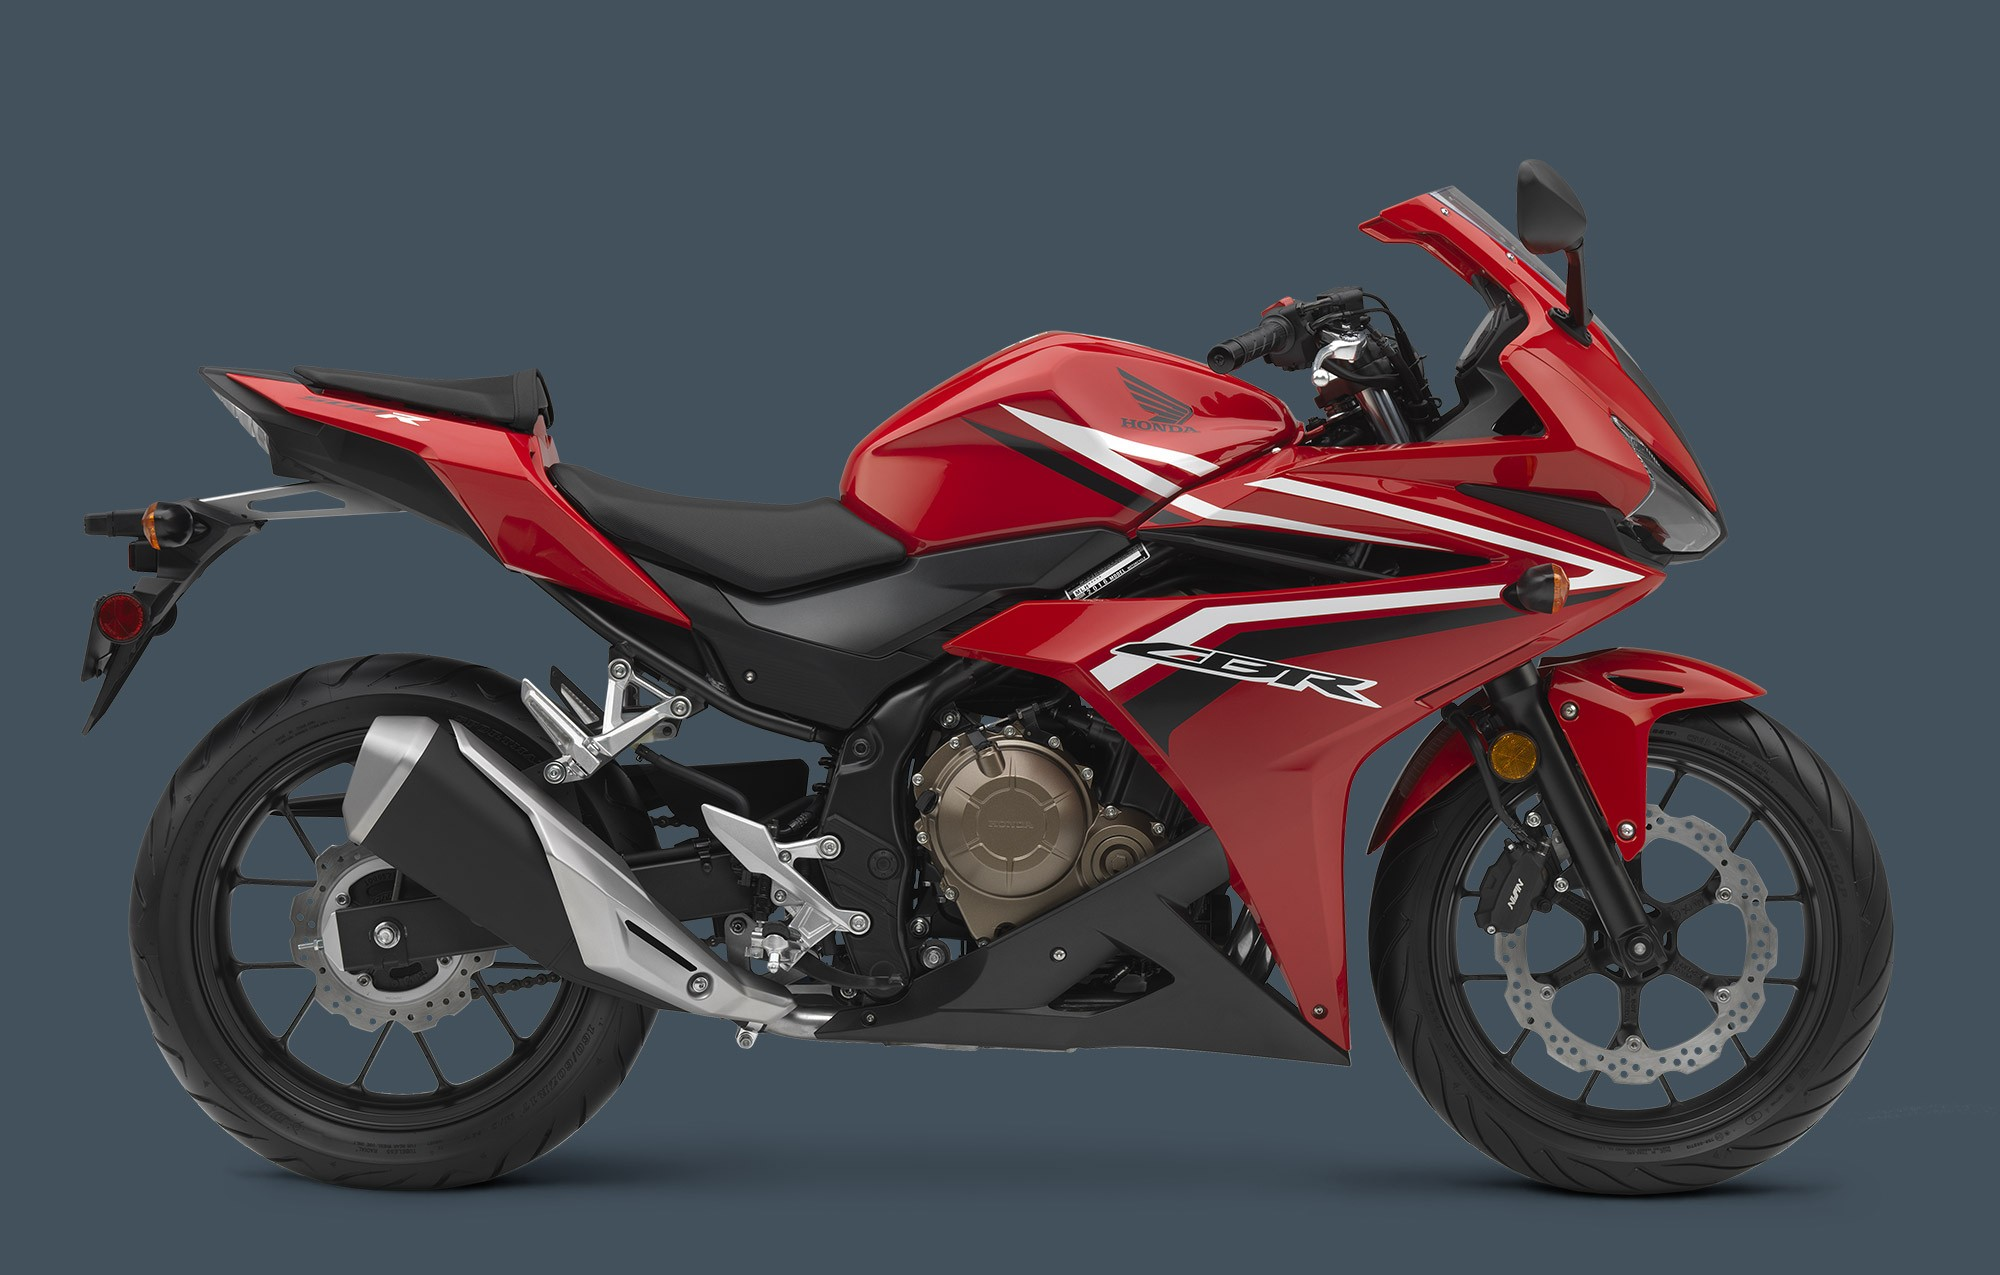 2016 honda cbr500r unveiled looks sharp and agile autoevolution. Black Bedroom Furniture Sets. Home Design Ideas